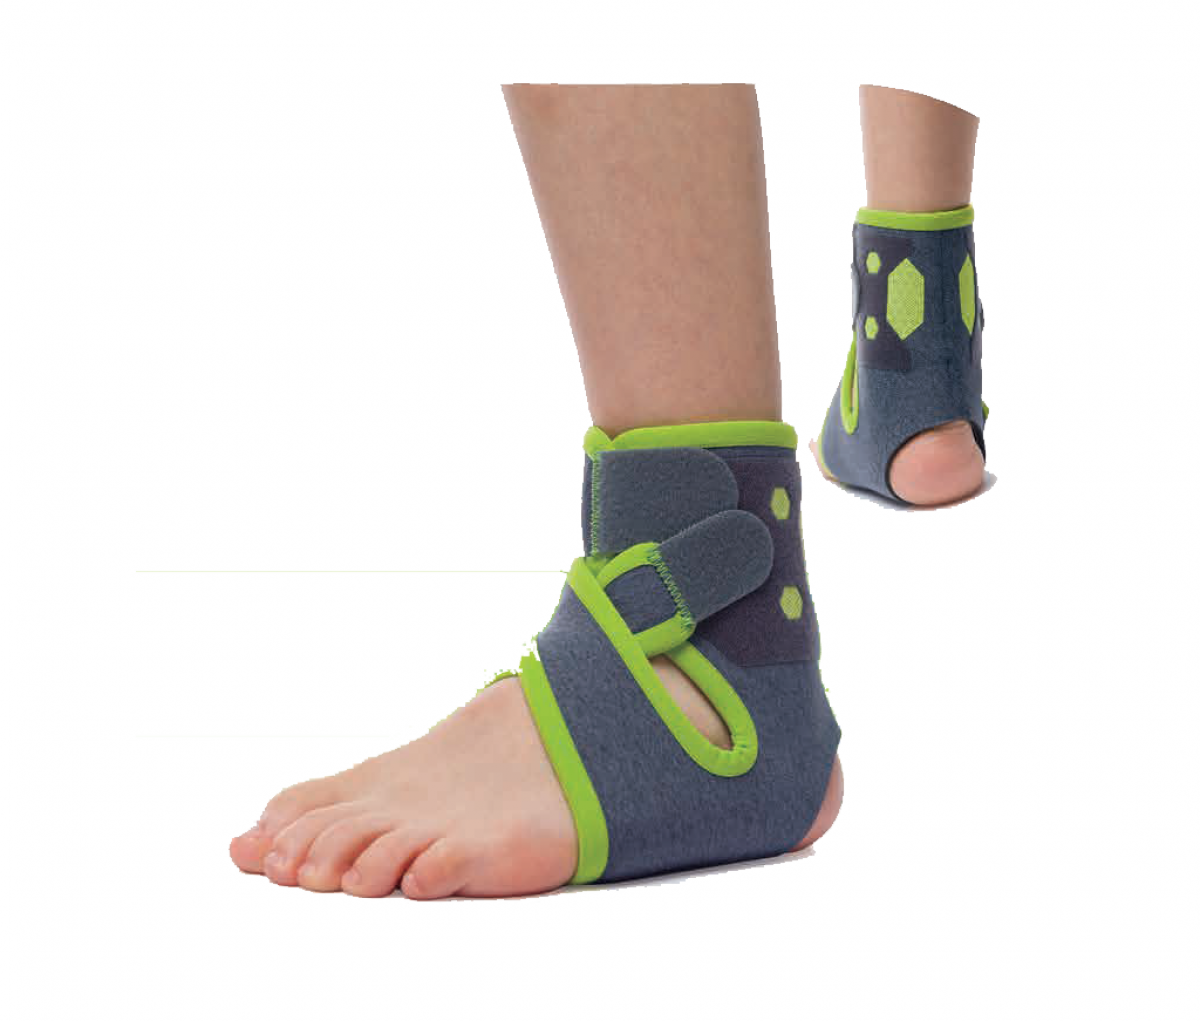 ANKLE SUPPORT - T1 MPK800